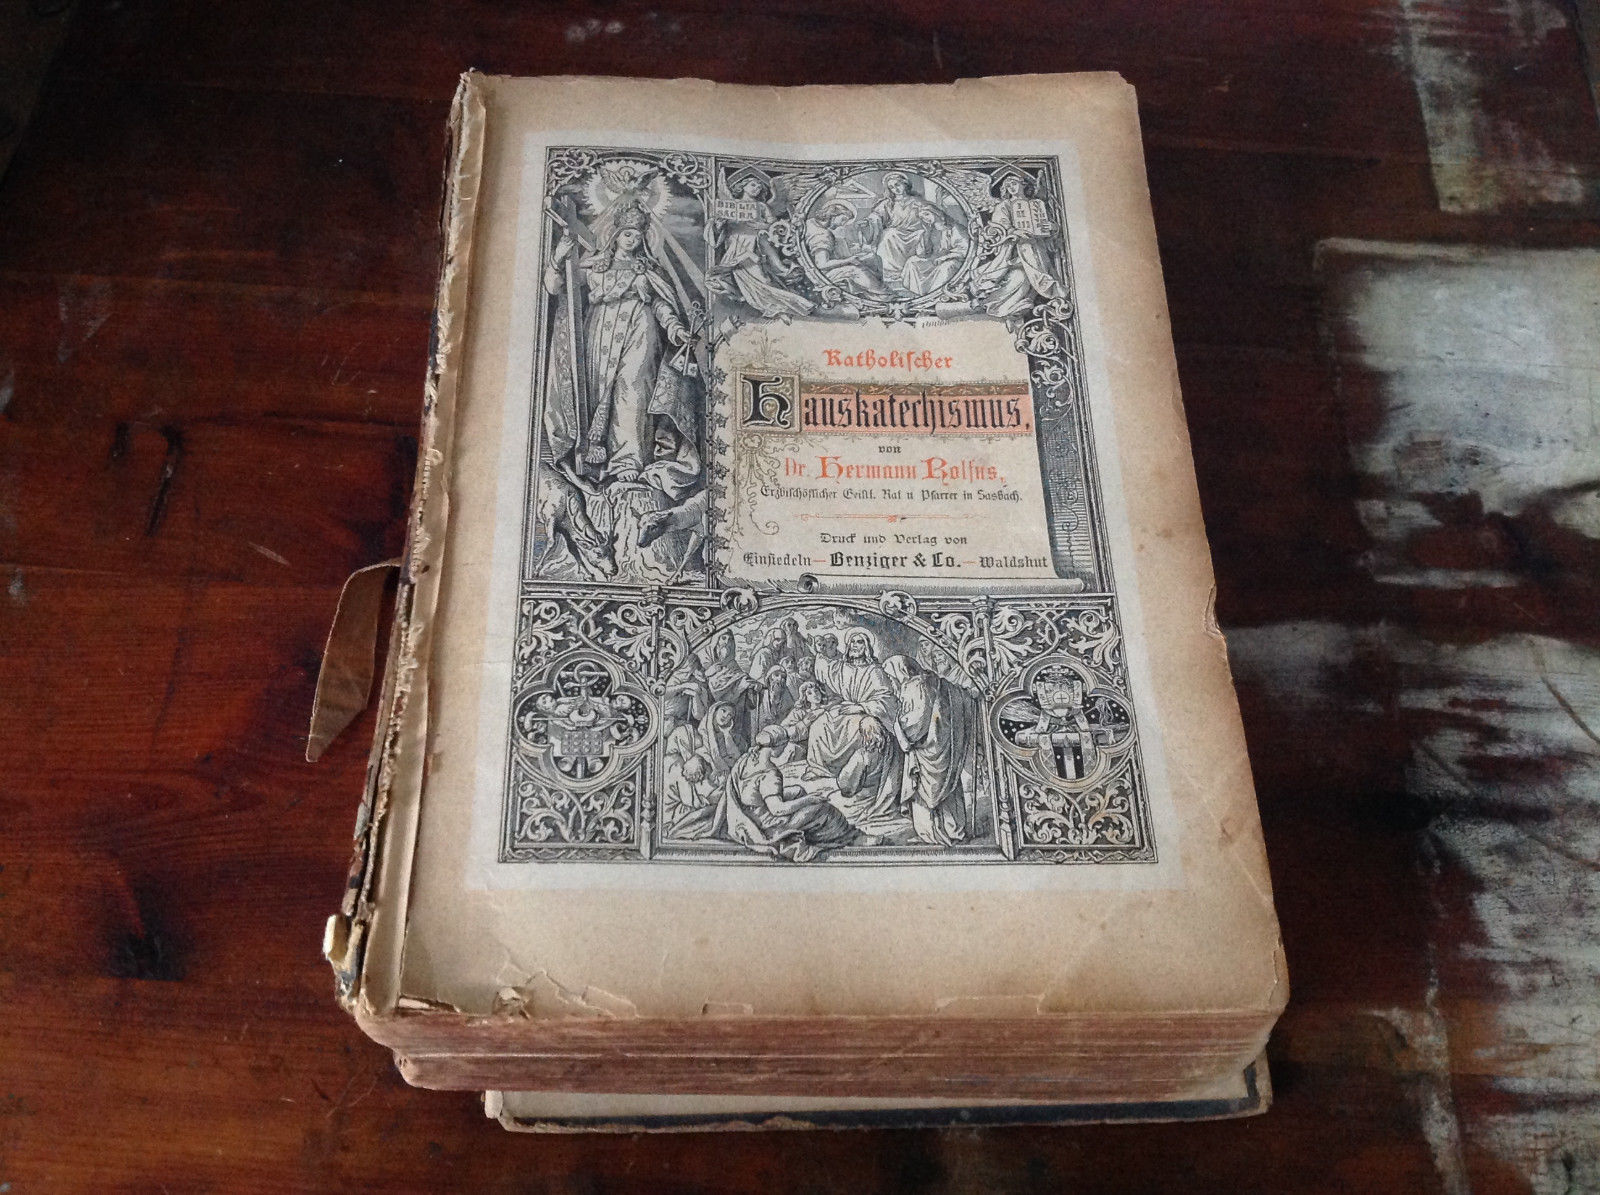 Antique Book Katholischer Hauskateerchismus by Dr. Hermann Rolfus in German